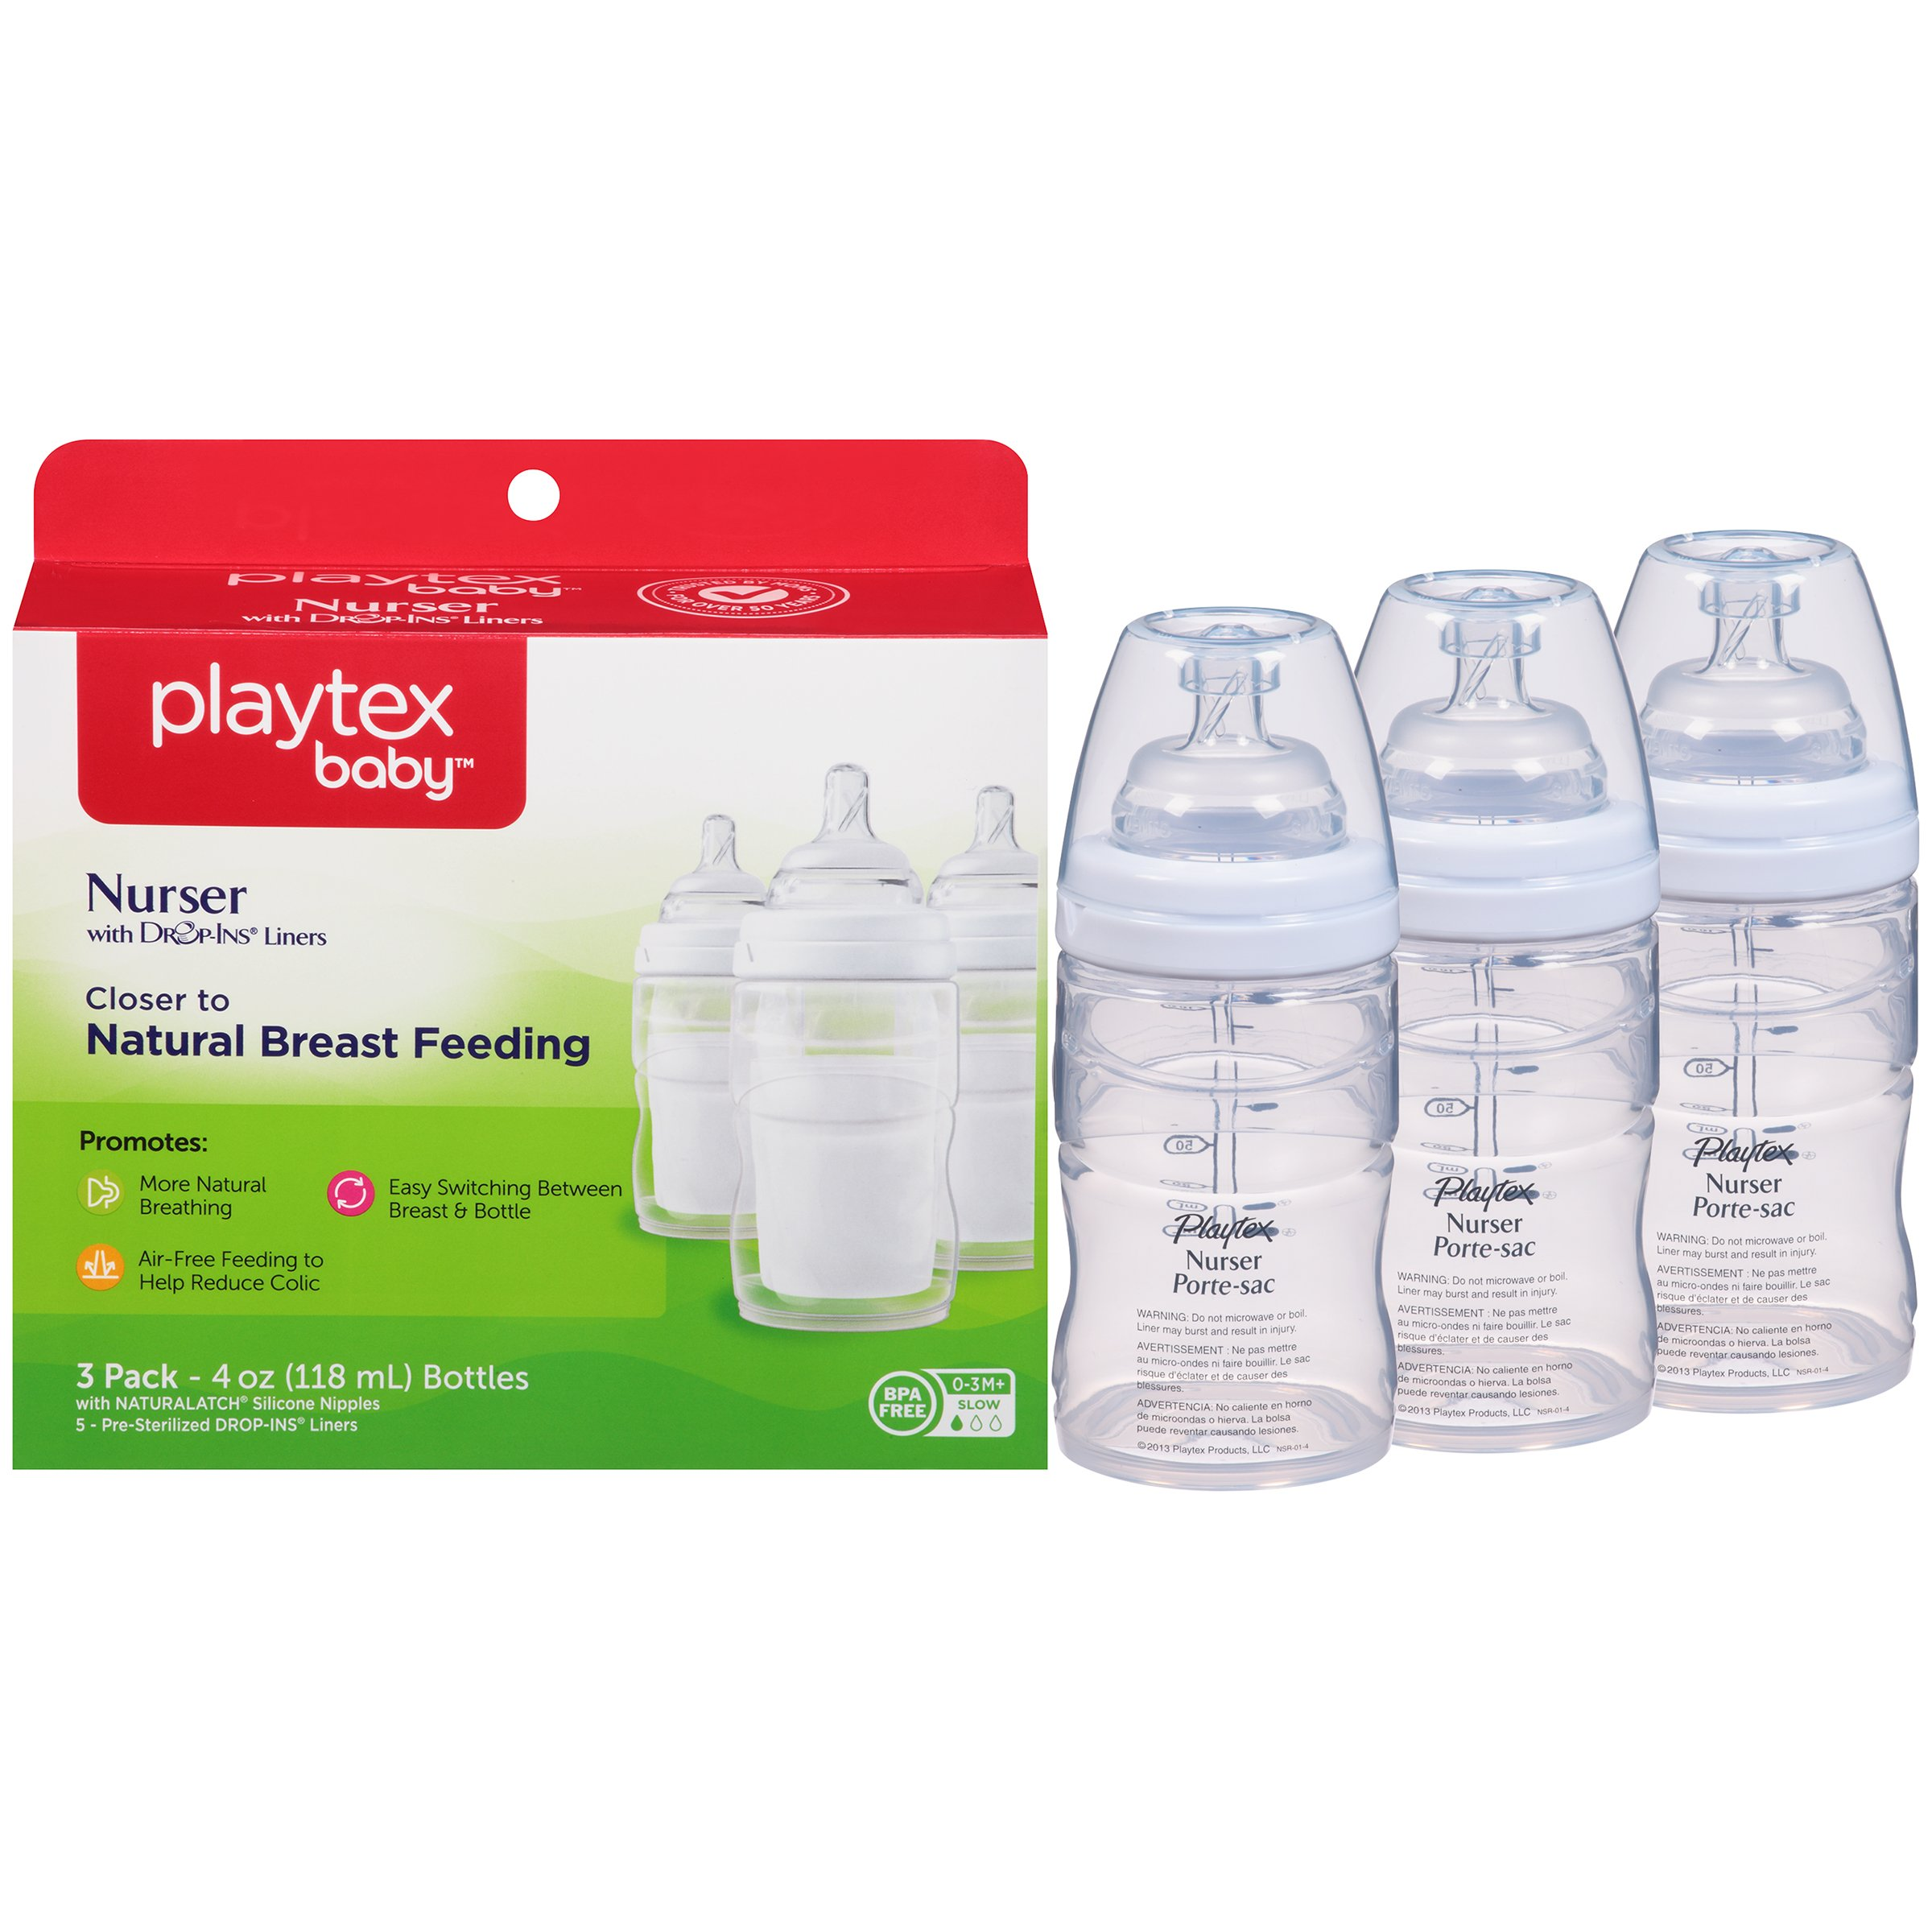 Playtex Baby Nurser Baby Bottle with Drop-Ins Disposable Liners, Closer to Breastfeeding, 4 Ounce - 3 Pack